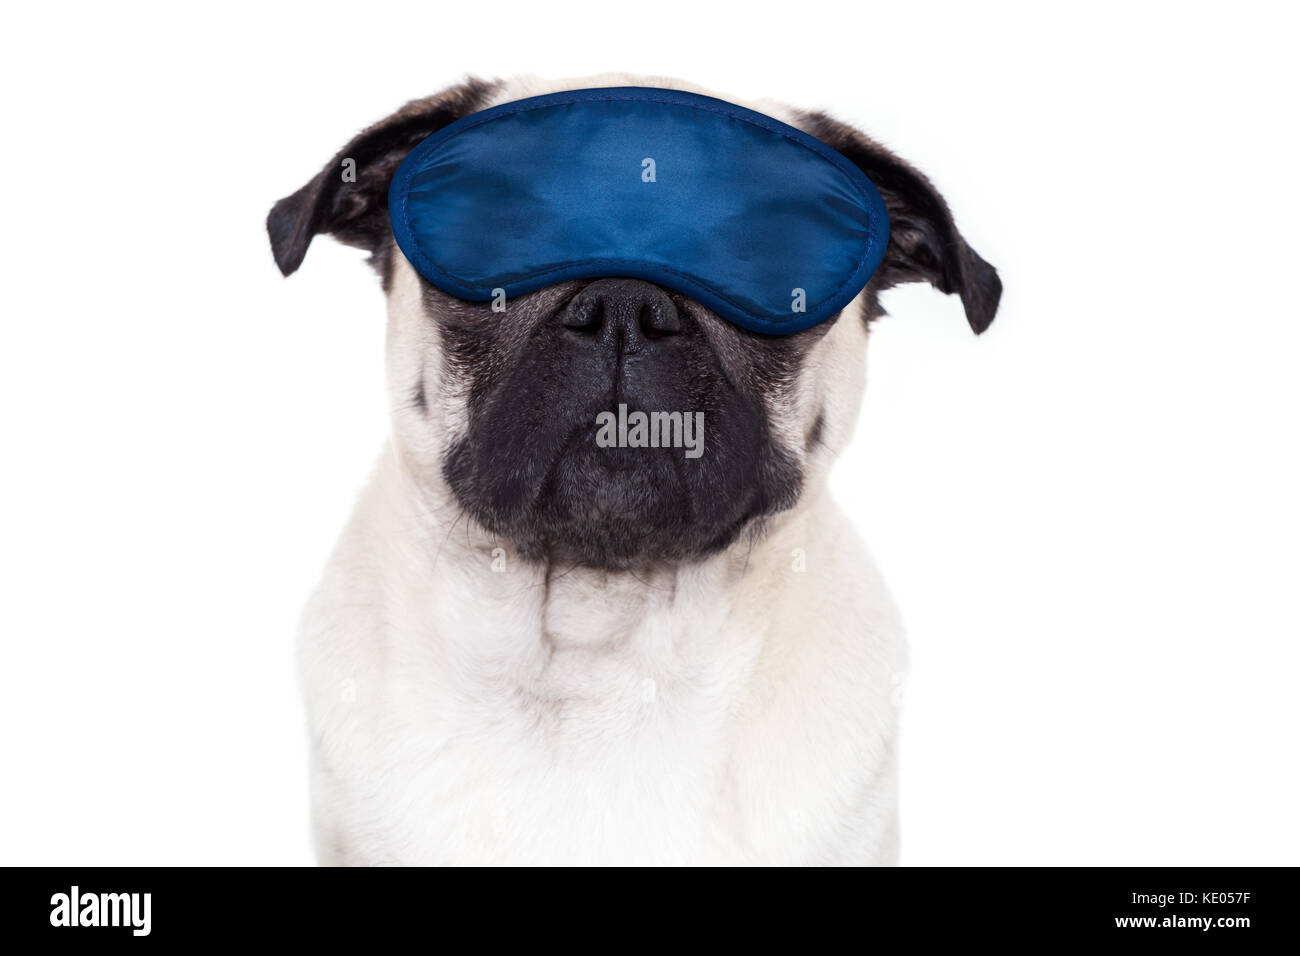 pug  dog  resting ,sleeping or having a siesta  with eye mask, isolated on white background - Stock Image